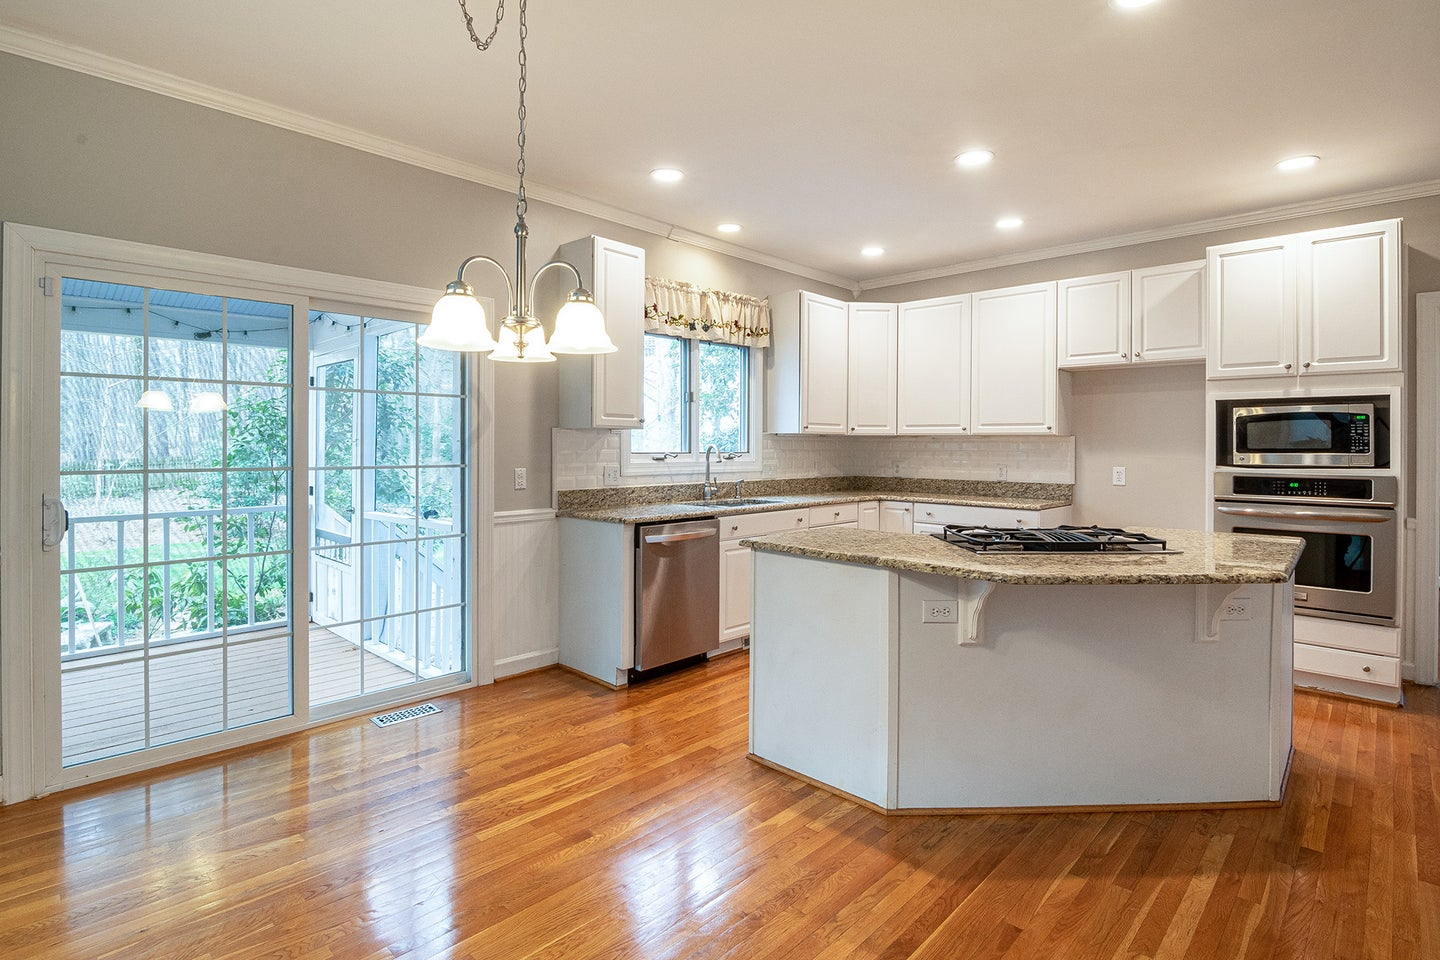 a clean kitchen with shiny wood floors and white cabinets